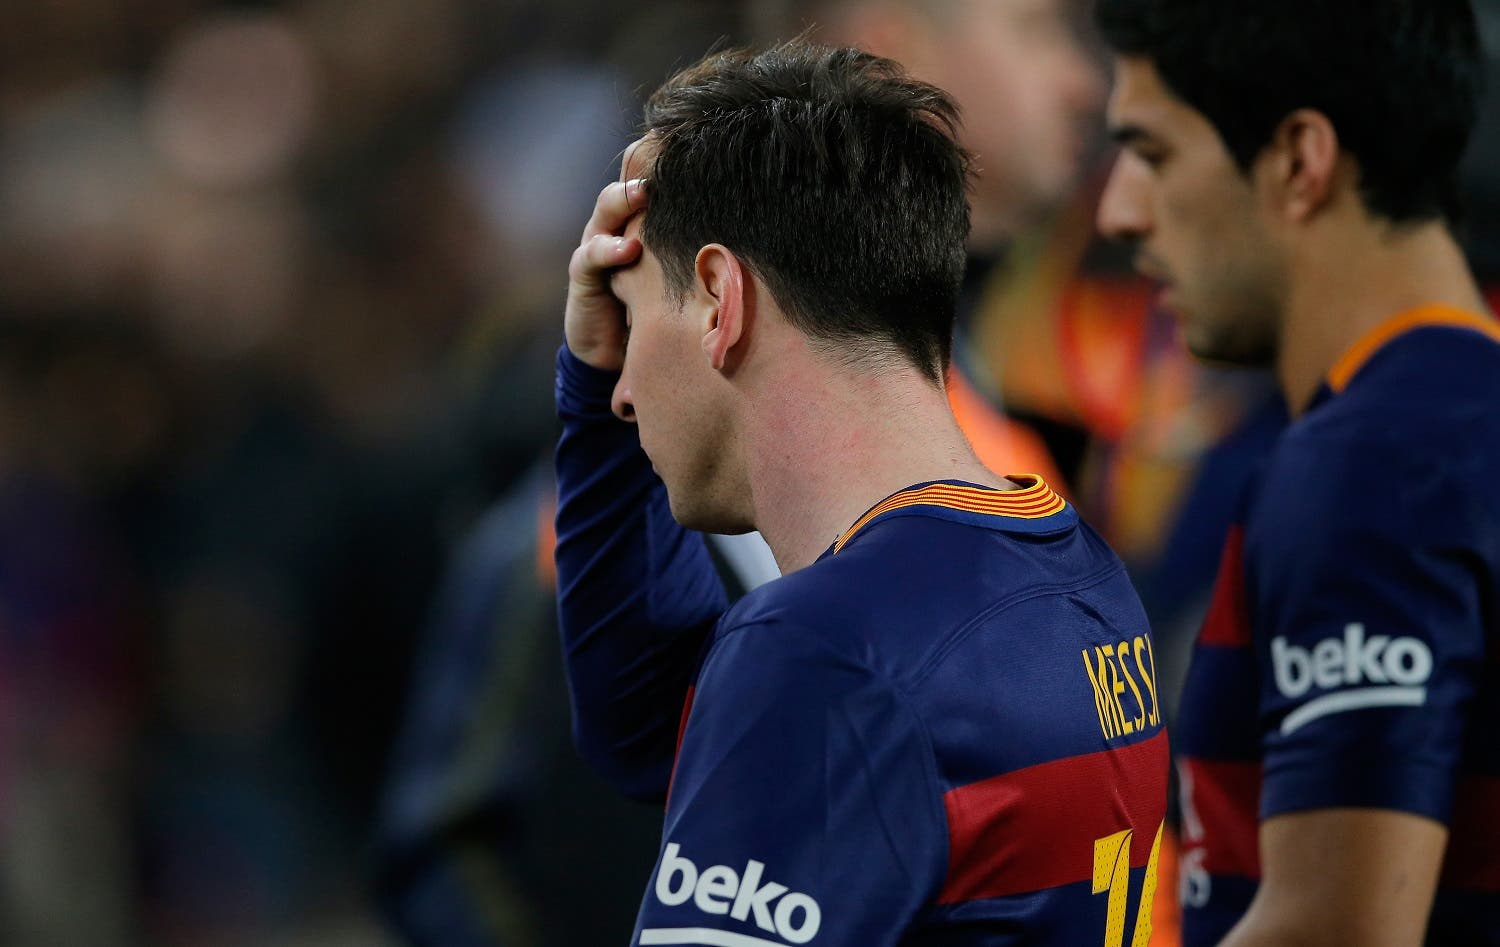 Barcelona's Lionel Messi and Luis Suarez, right, leave the pitch at the end of a Spanish La Liga soccer match between Barcelona and Real Madrid, dubbed 'el clasico', at the Camp Nou stadium in Barcelona, Spain, Saturday, April 2, 2016. Real Madrid won 2-1. (AP)